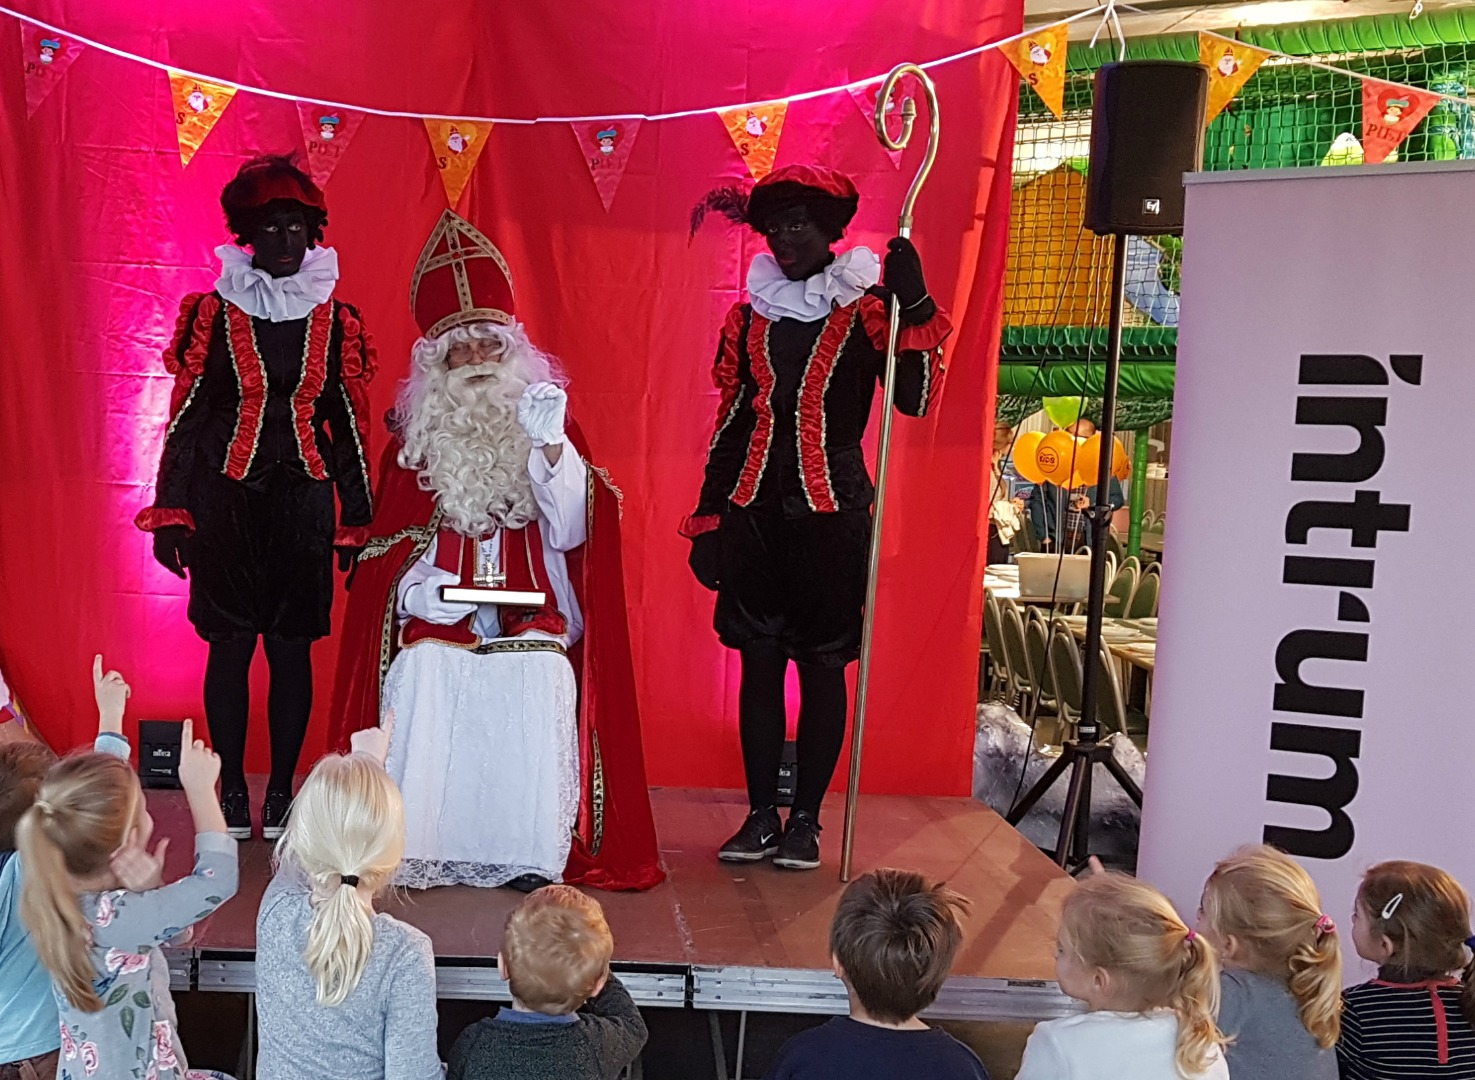 sinterklaasfeest kids site.jpg